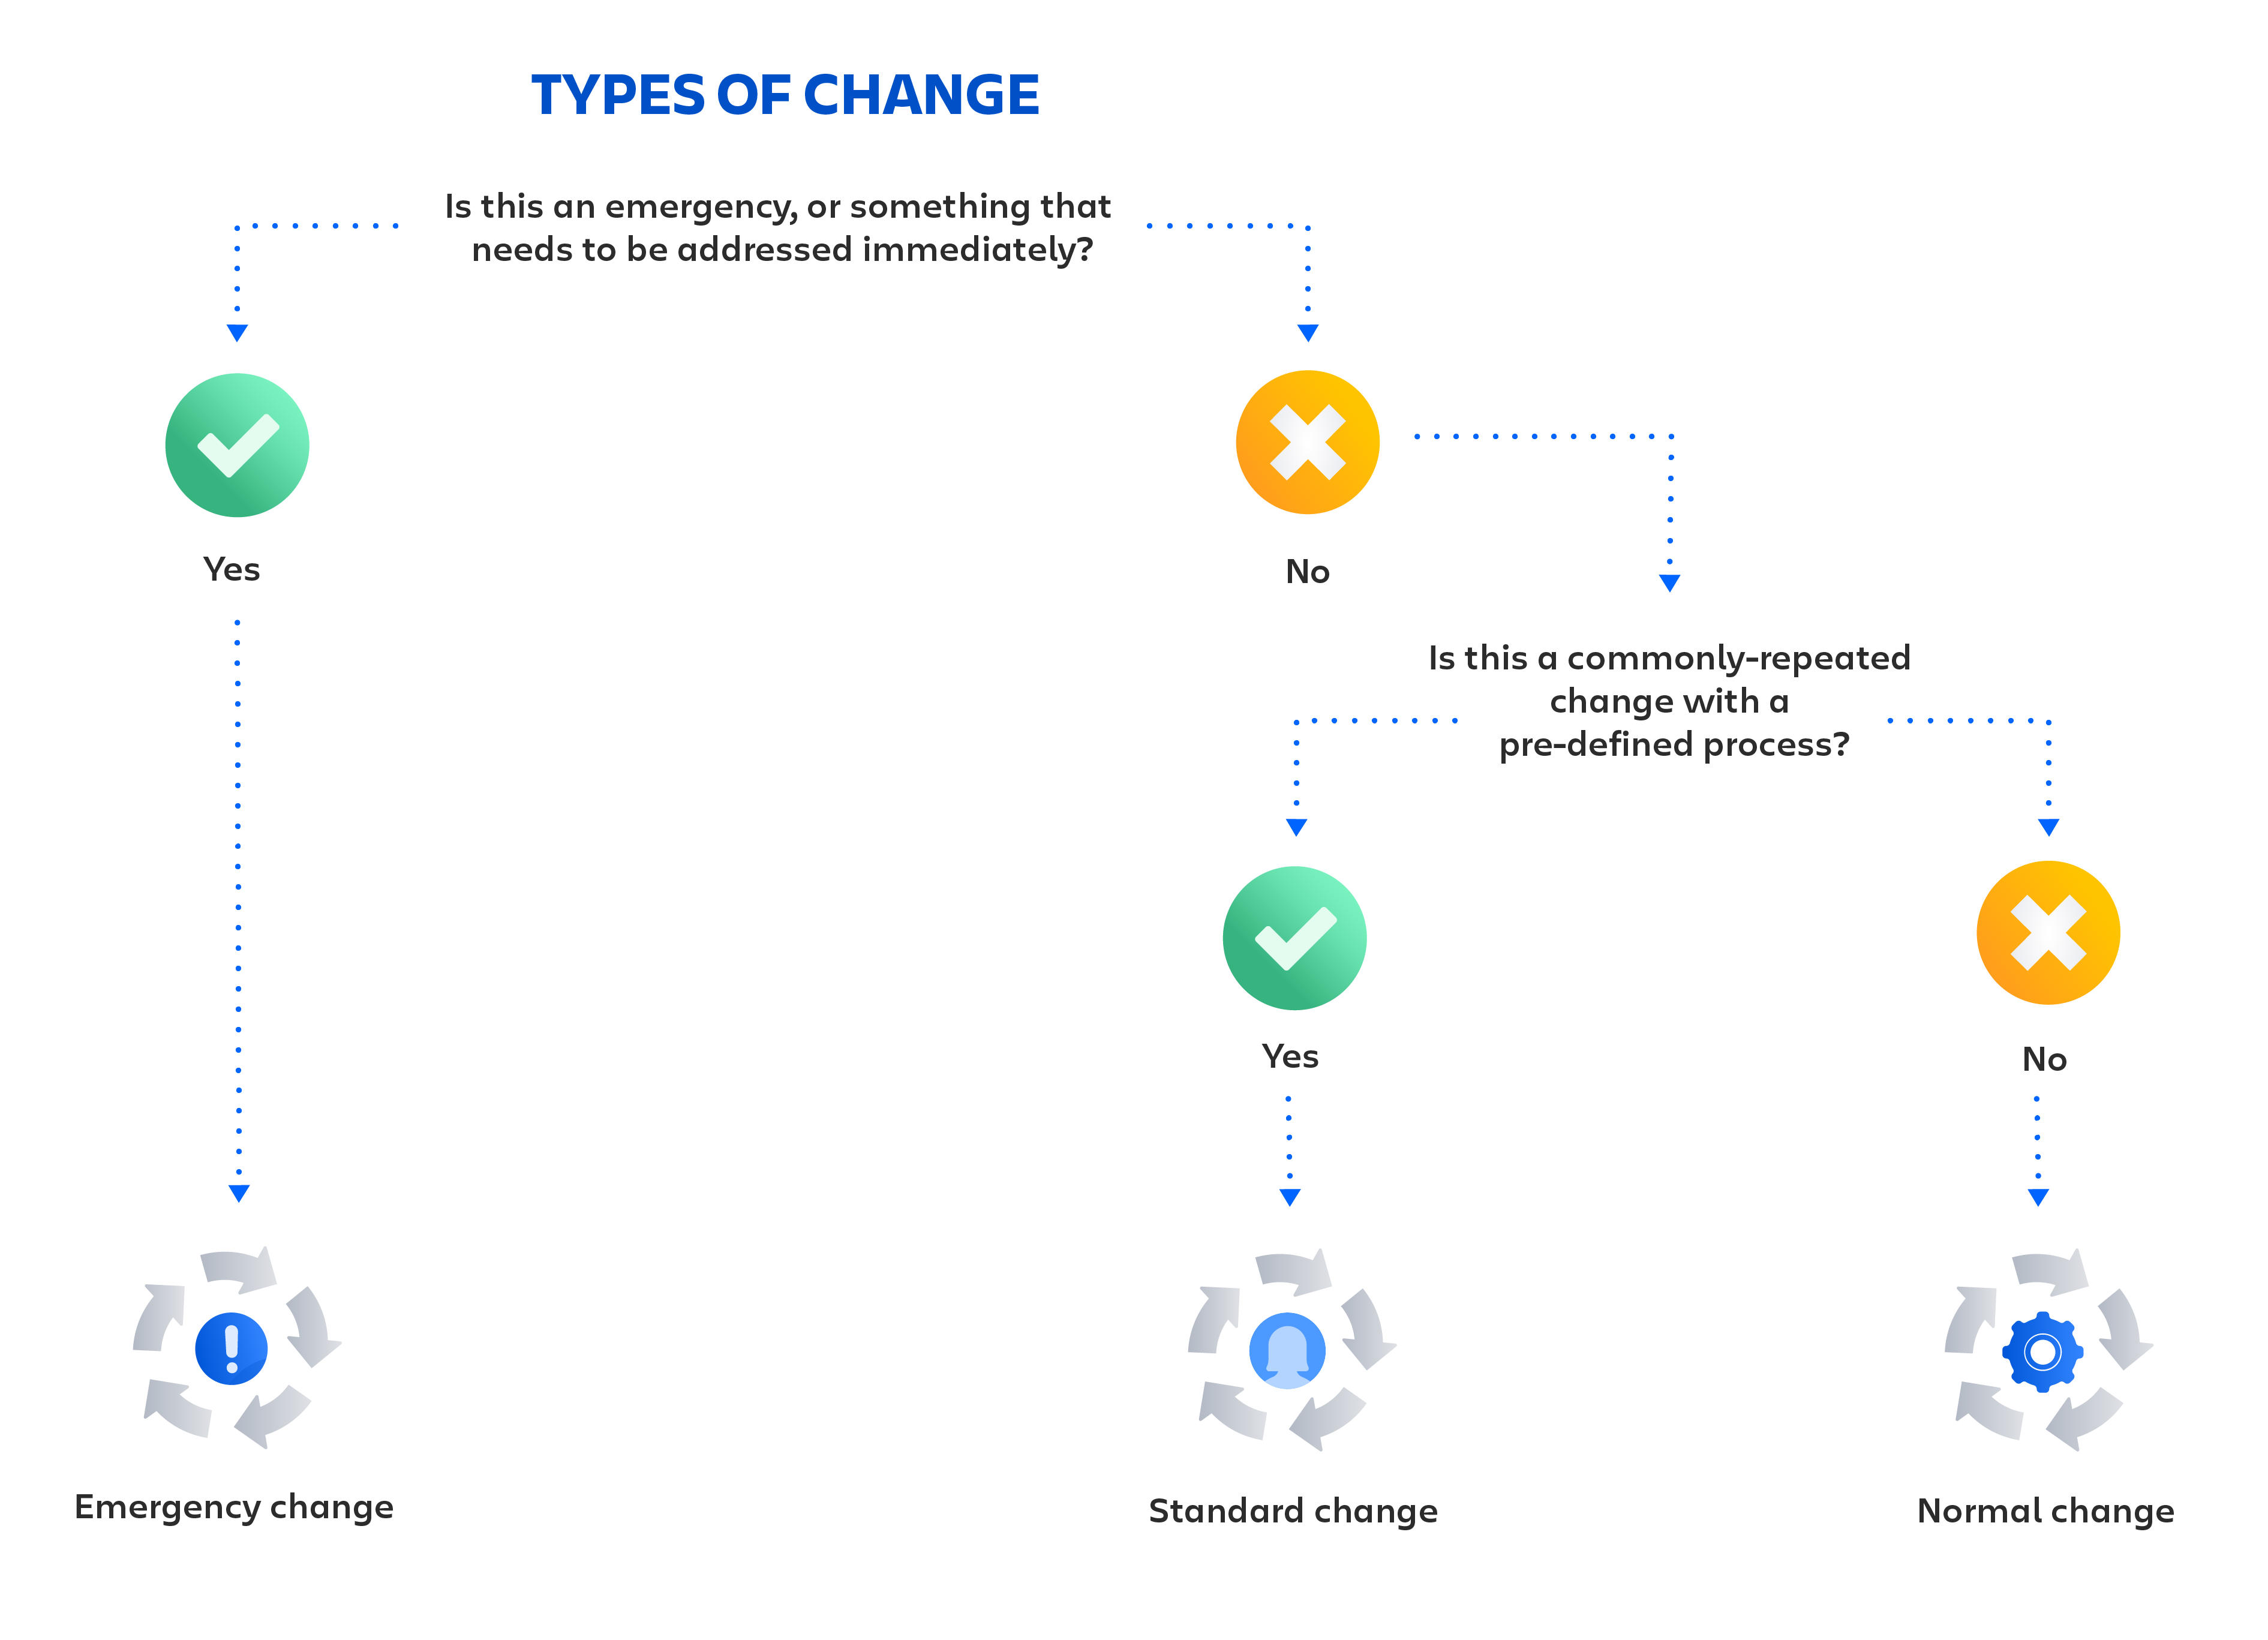 Types of change visual